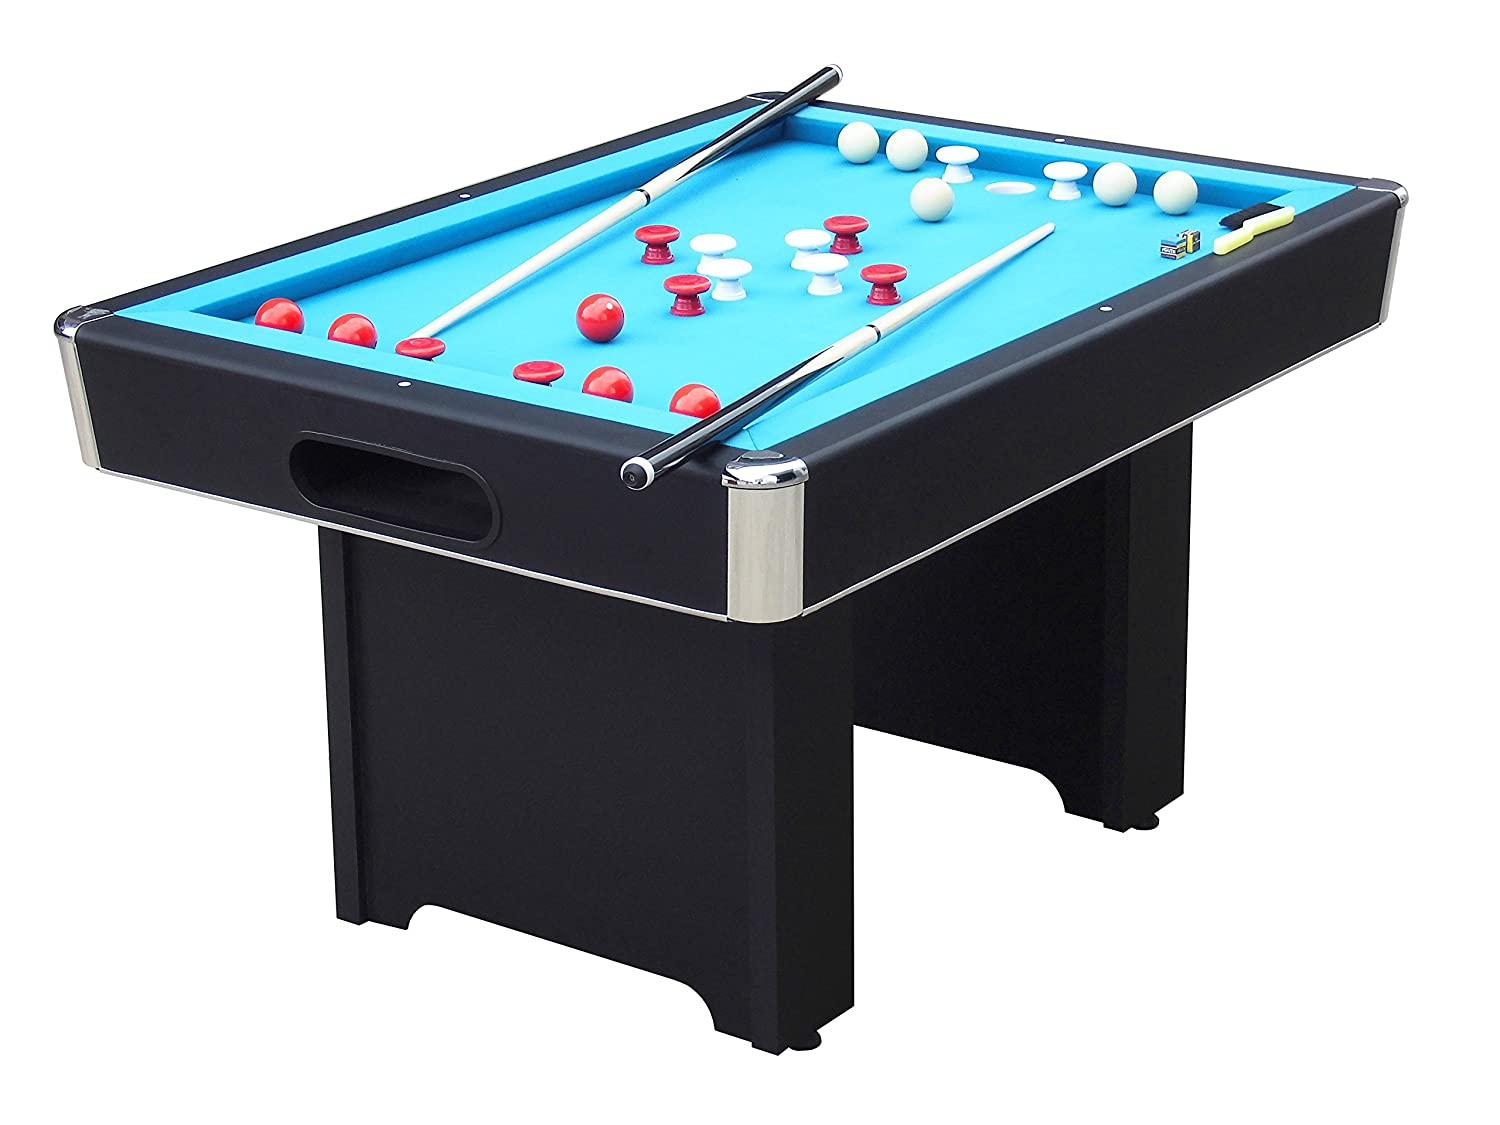 Amazoncom Carmelli NGPG Renegade Slate Bumper Pool Table With - Carmelli pool table